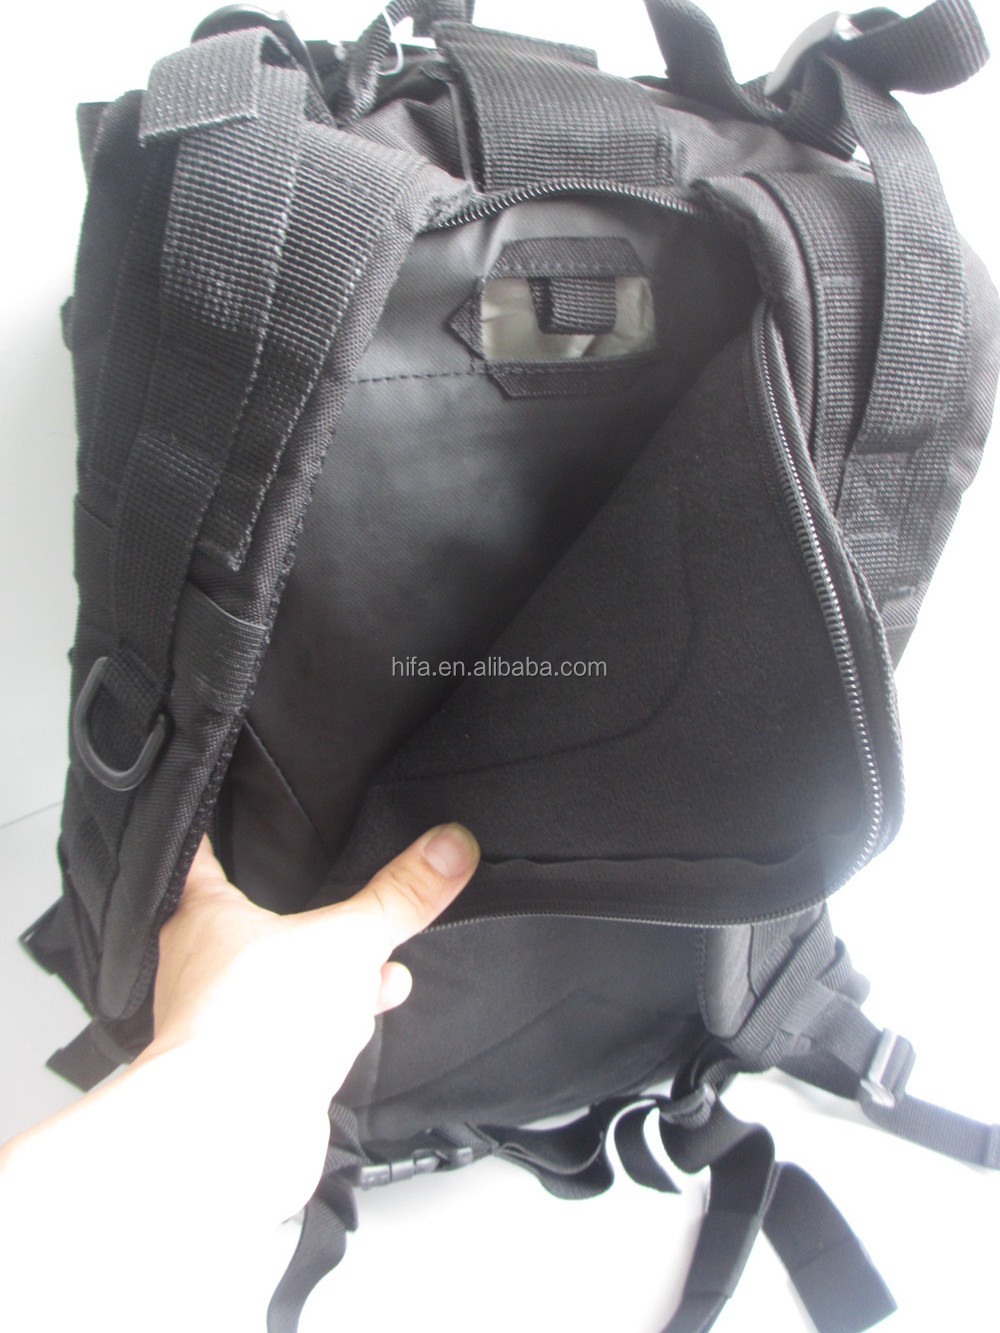 military backpack,tactical backpack,assault backpack